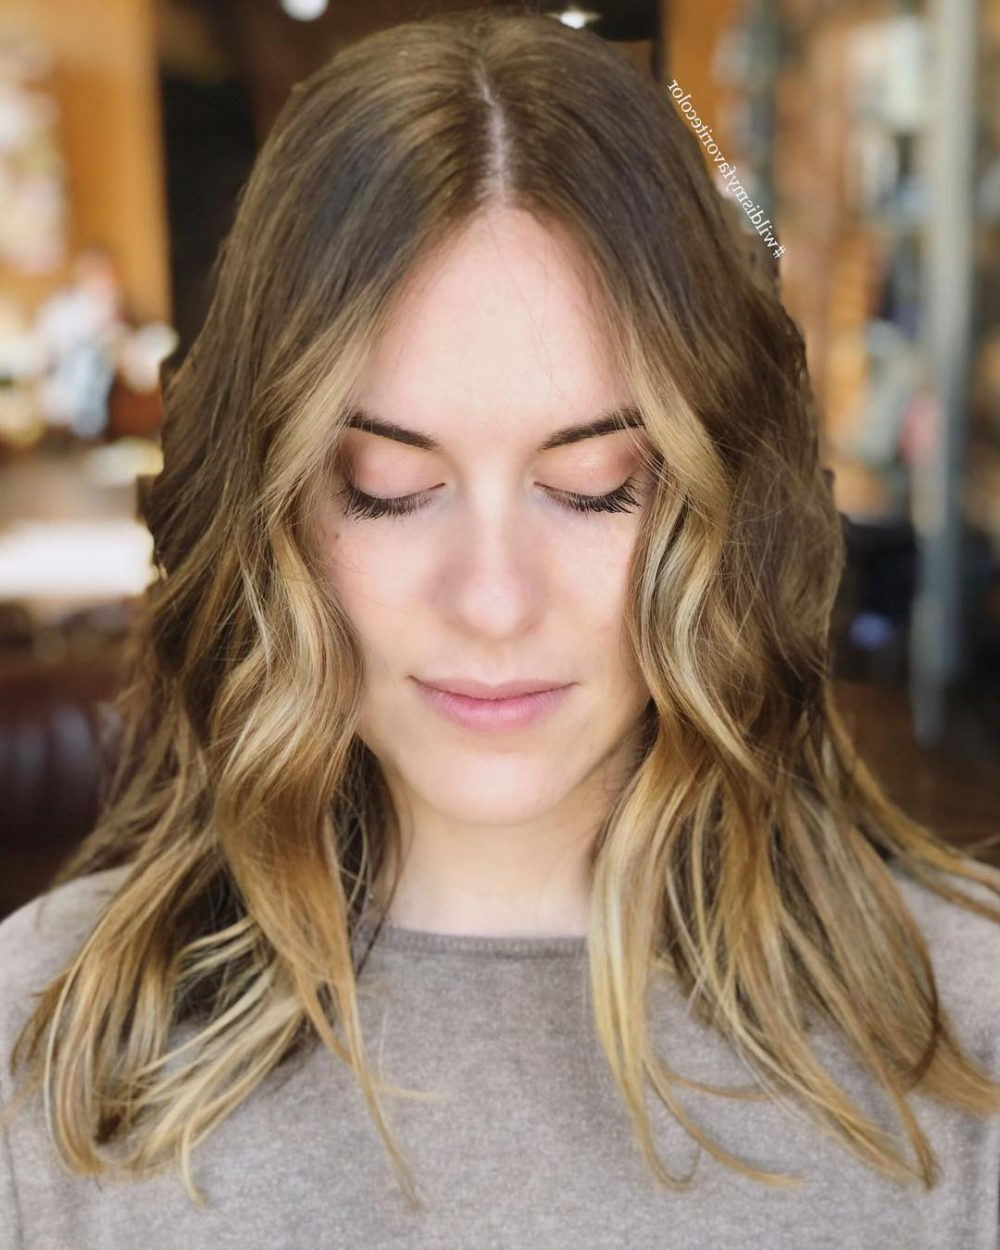 17 Flattering Medium Hairstyles For Round Faces In 2019 Inside 2018 Medium Haircuts For A Round Face (Gallery 4 of 20)